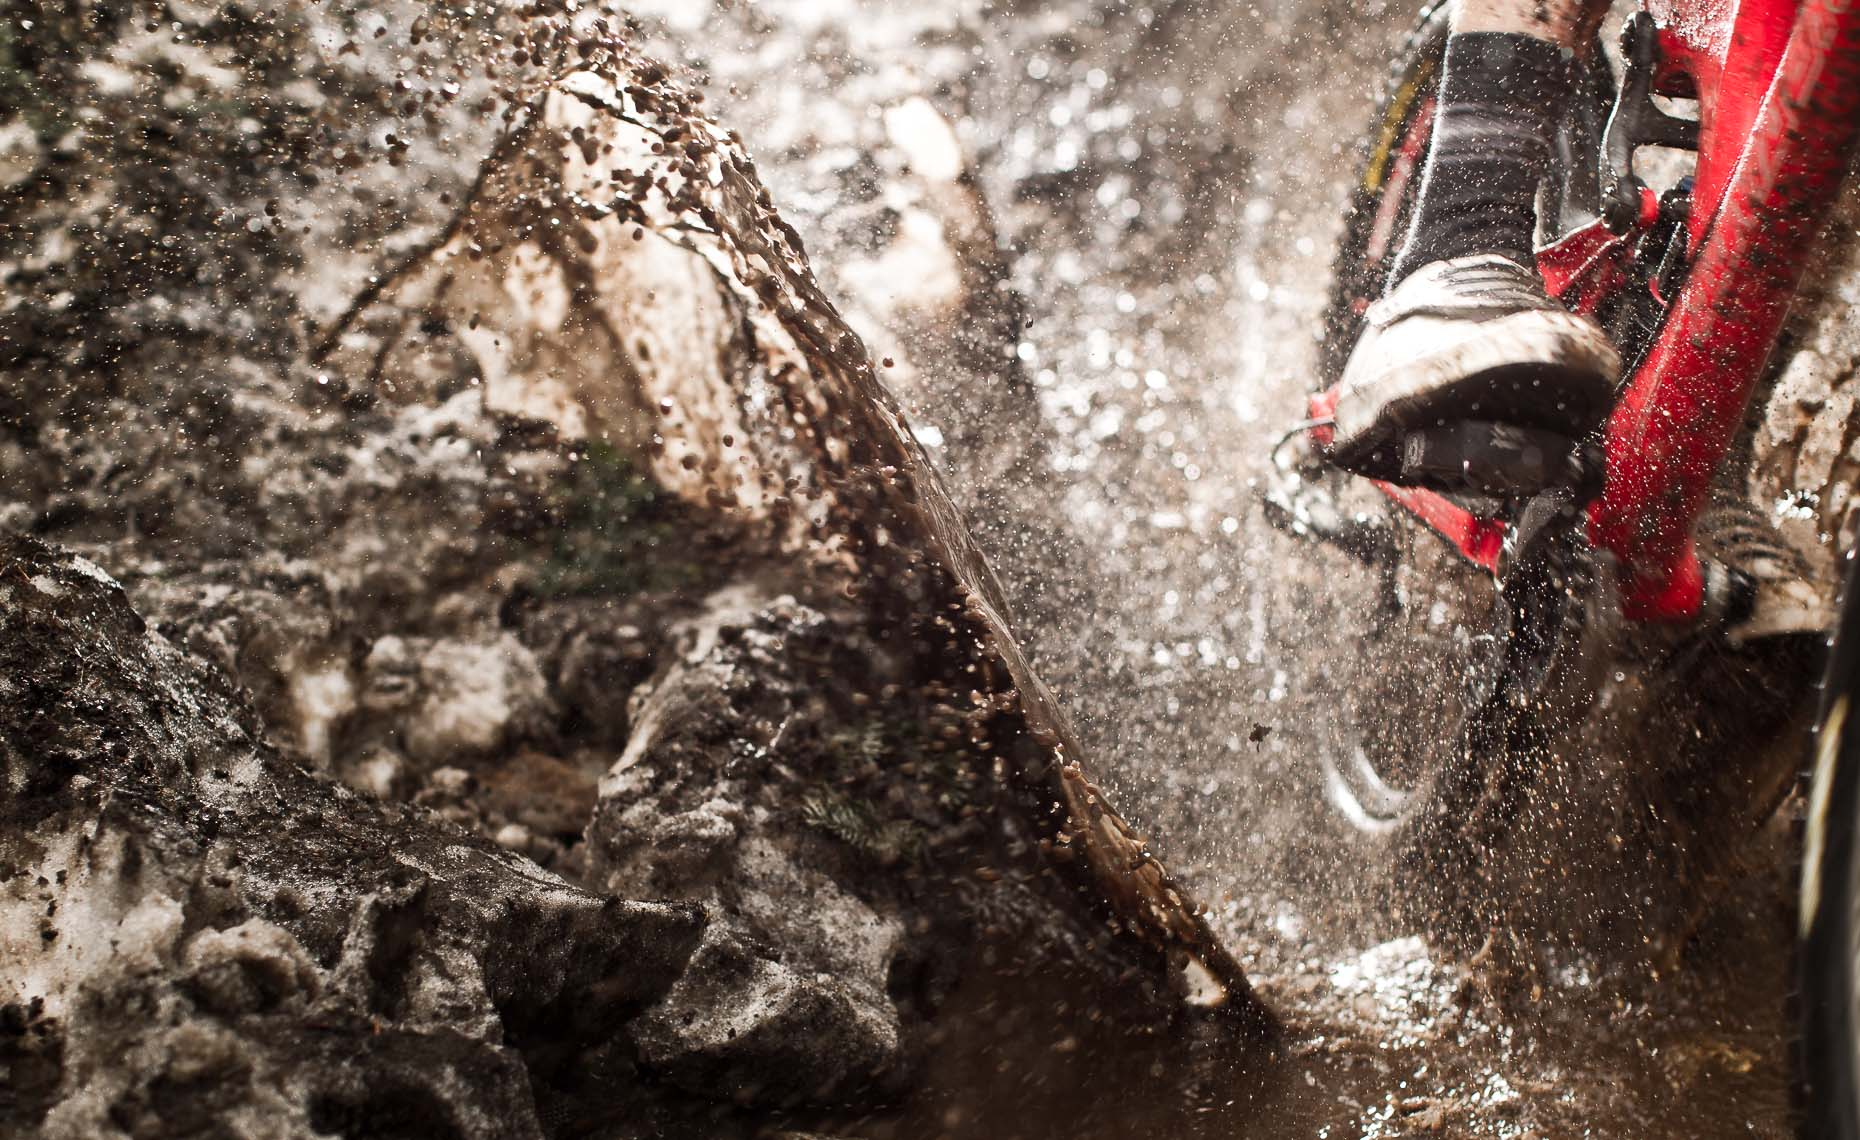 Closeup of snow and mud splash by mountain bike rider